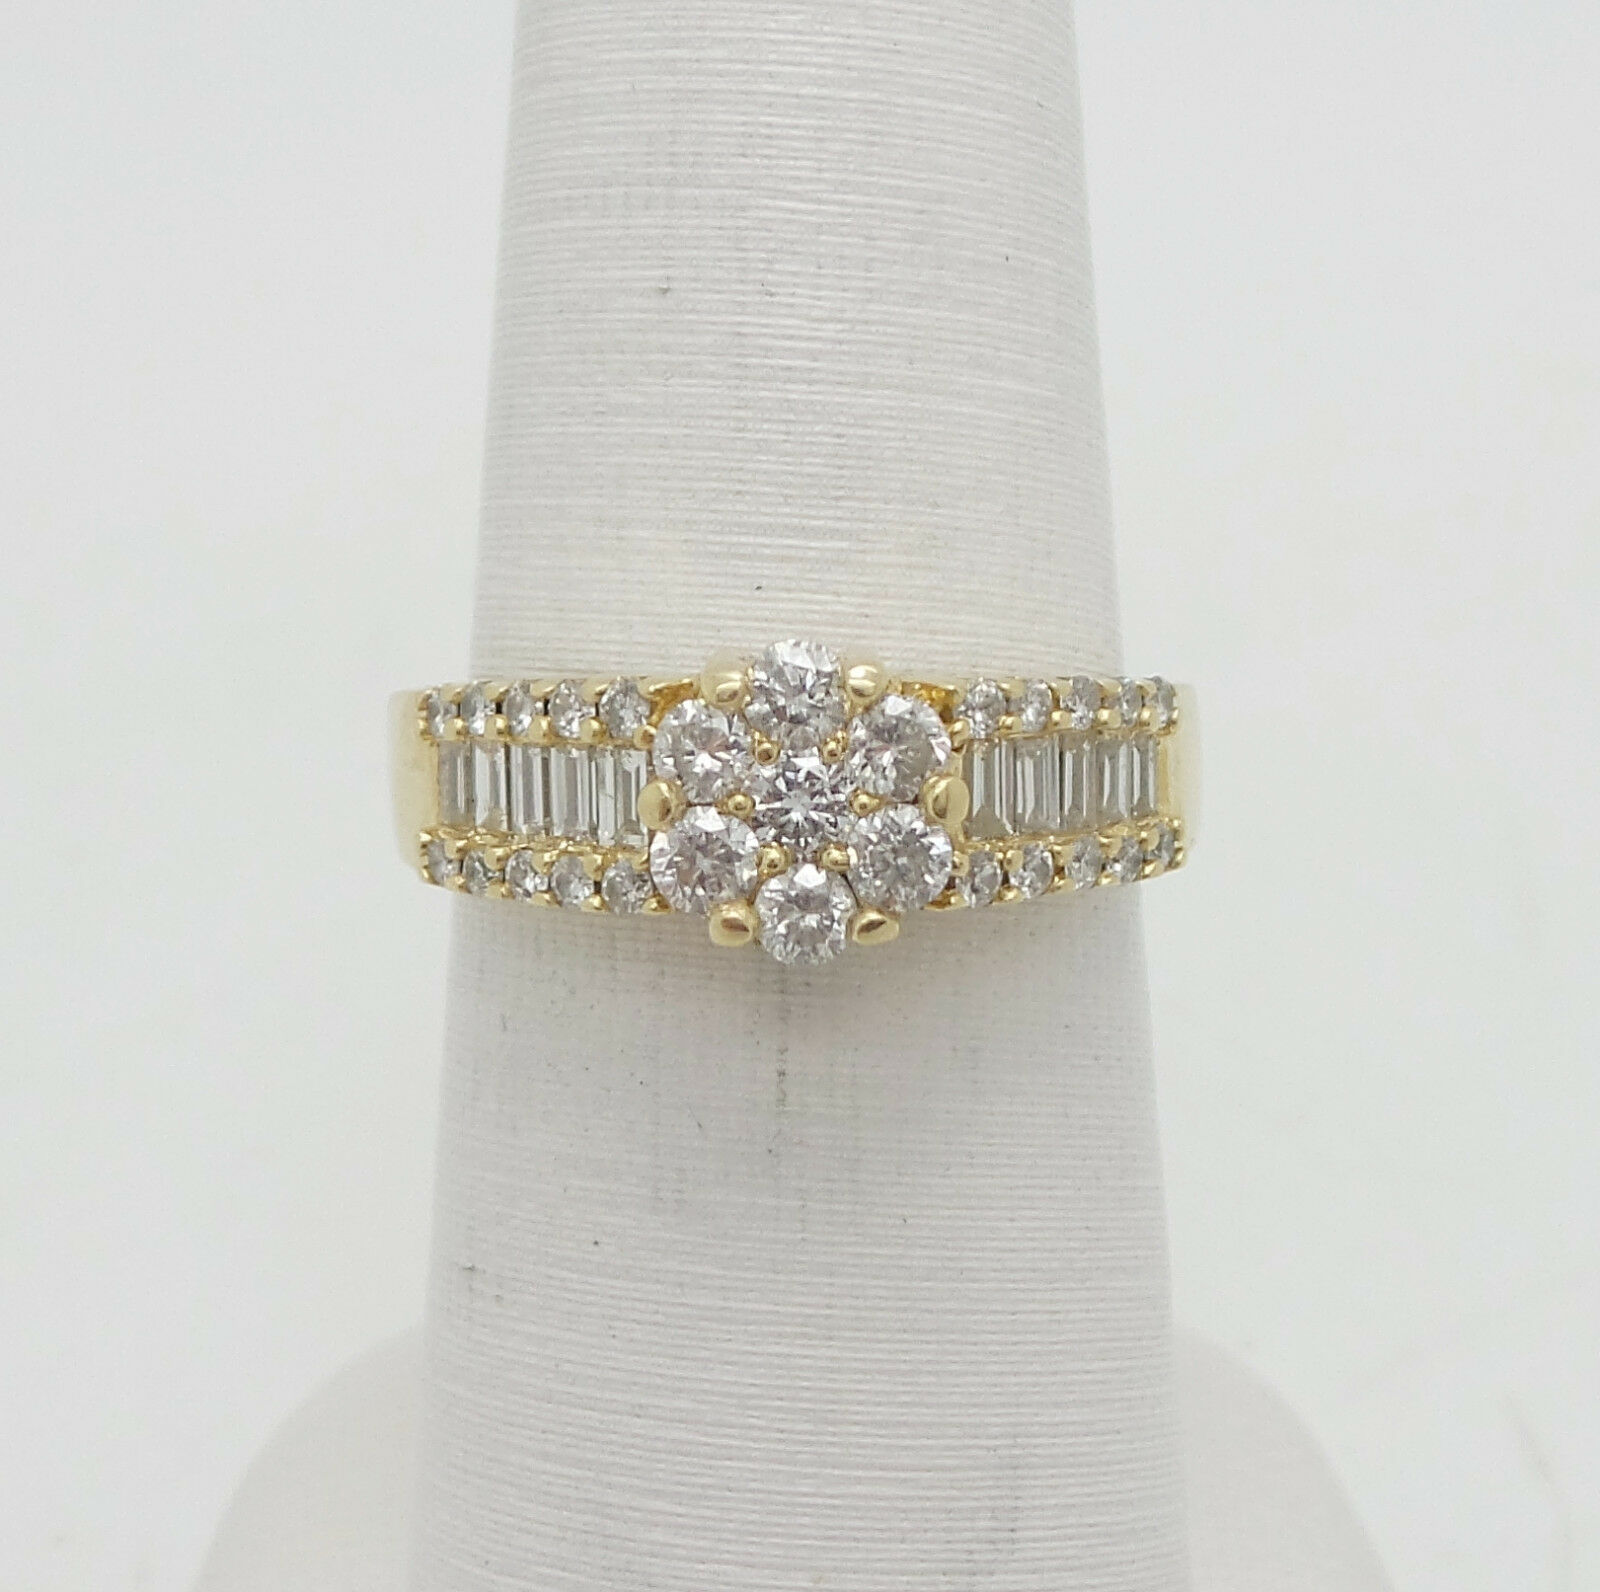 EFFY 1CT Cluster Diamond Solitaire Engagement Wedding Ring 14K Yellow gold